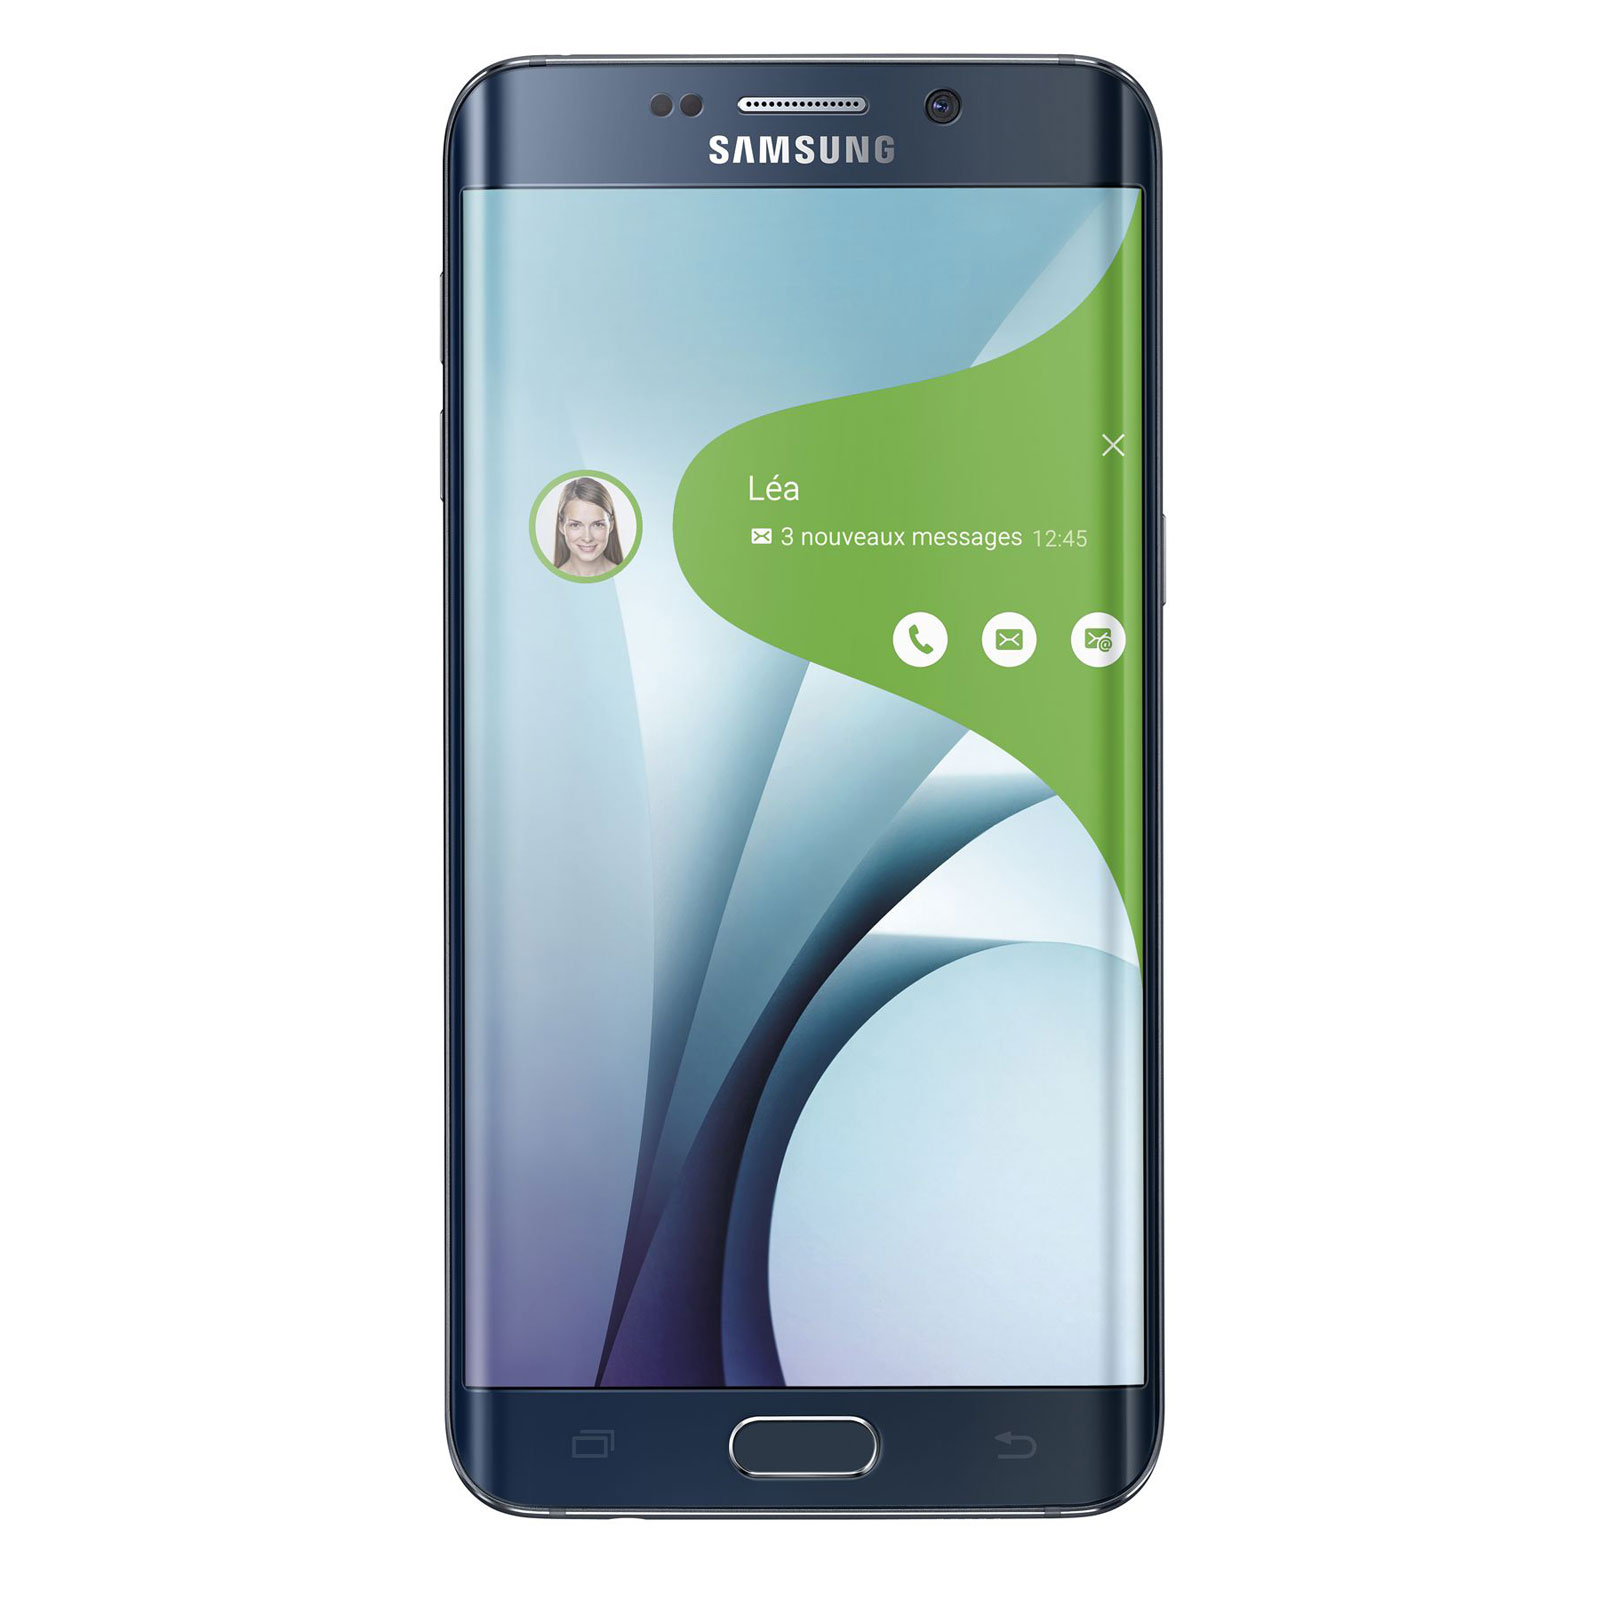 "Mobile & smartphone Samsung Galaxy S6 Edge+ SM-G928F Noir 32 Go Smartphone 4G-LTE Advanced - Exynos 7420 8-Core 2.1 Ghz - RAM 4 Go - Ecran tactile 5.7"" 1440 x 2560 - 32 Go - NFC/Bluetooth 4.1 - 3000 mAh - Android 5.1"